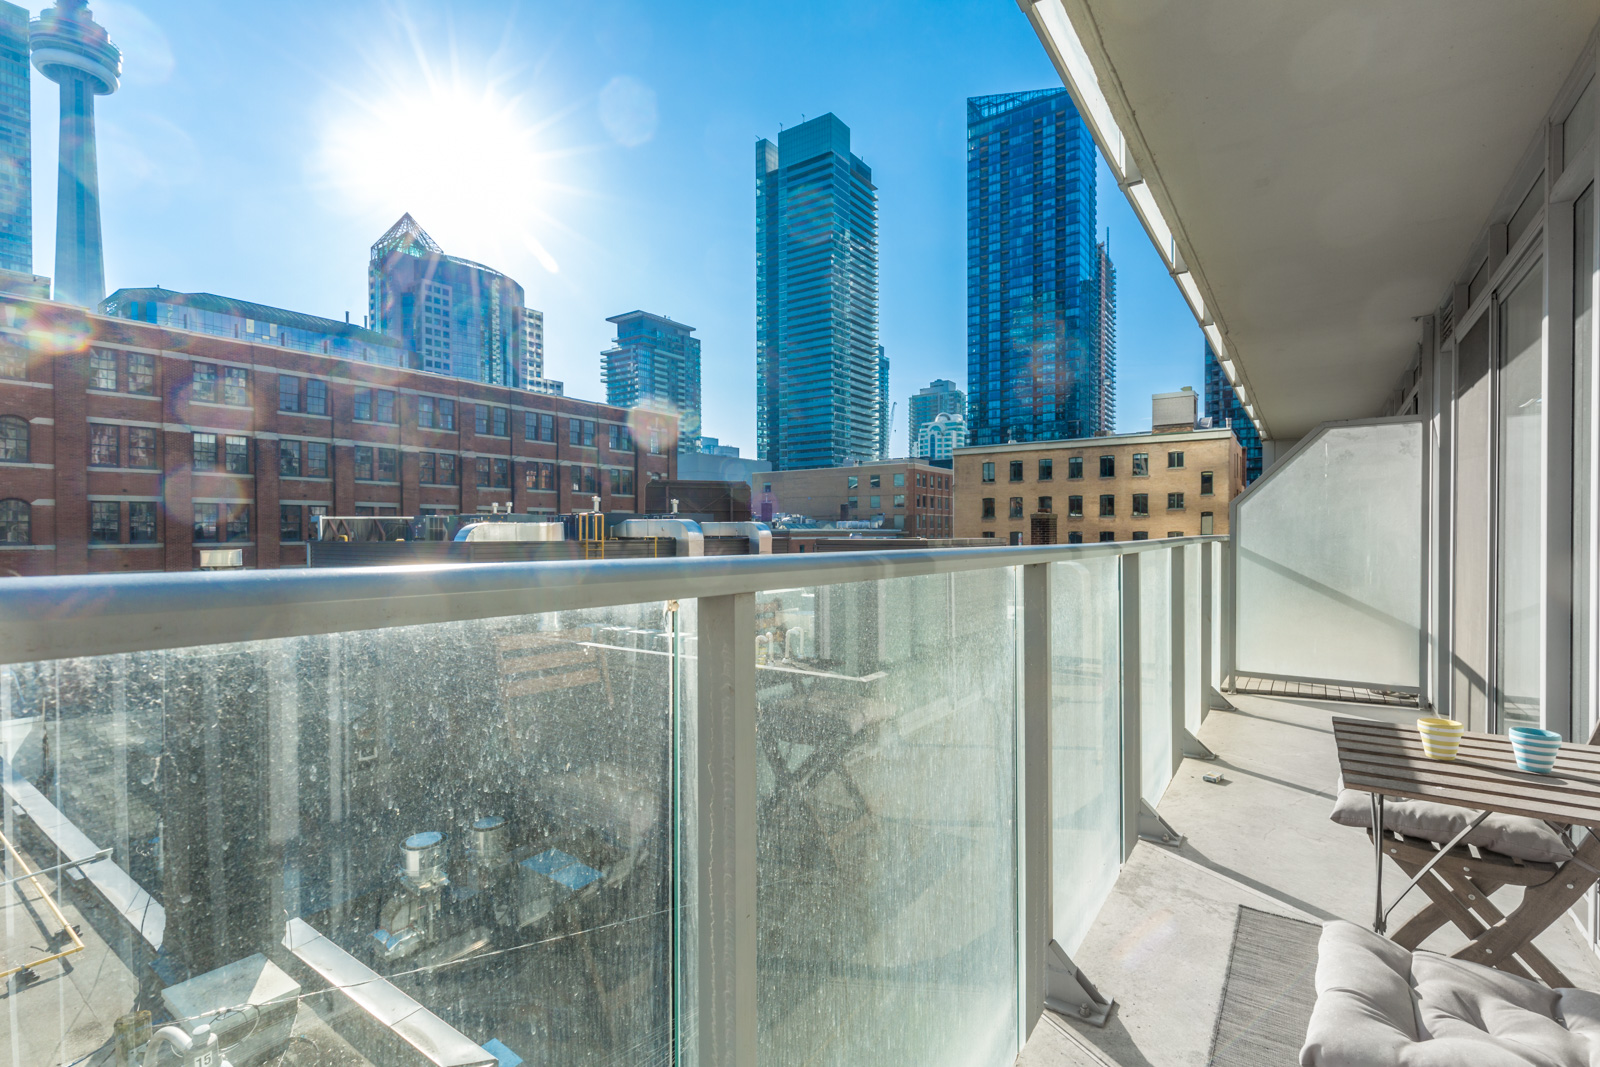 Photo of Toronto condo showing spacious balcony and view of CN Tower